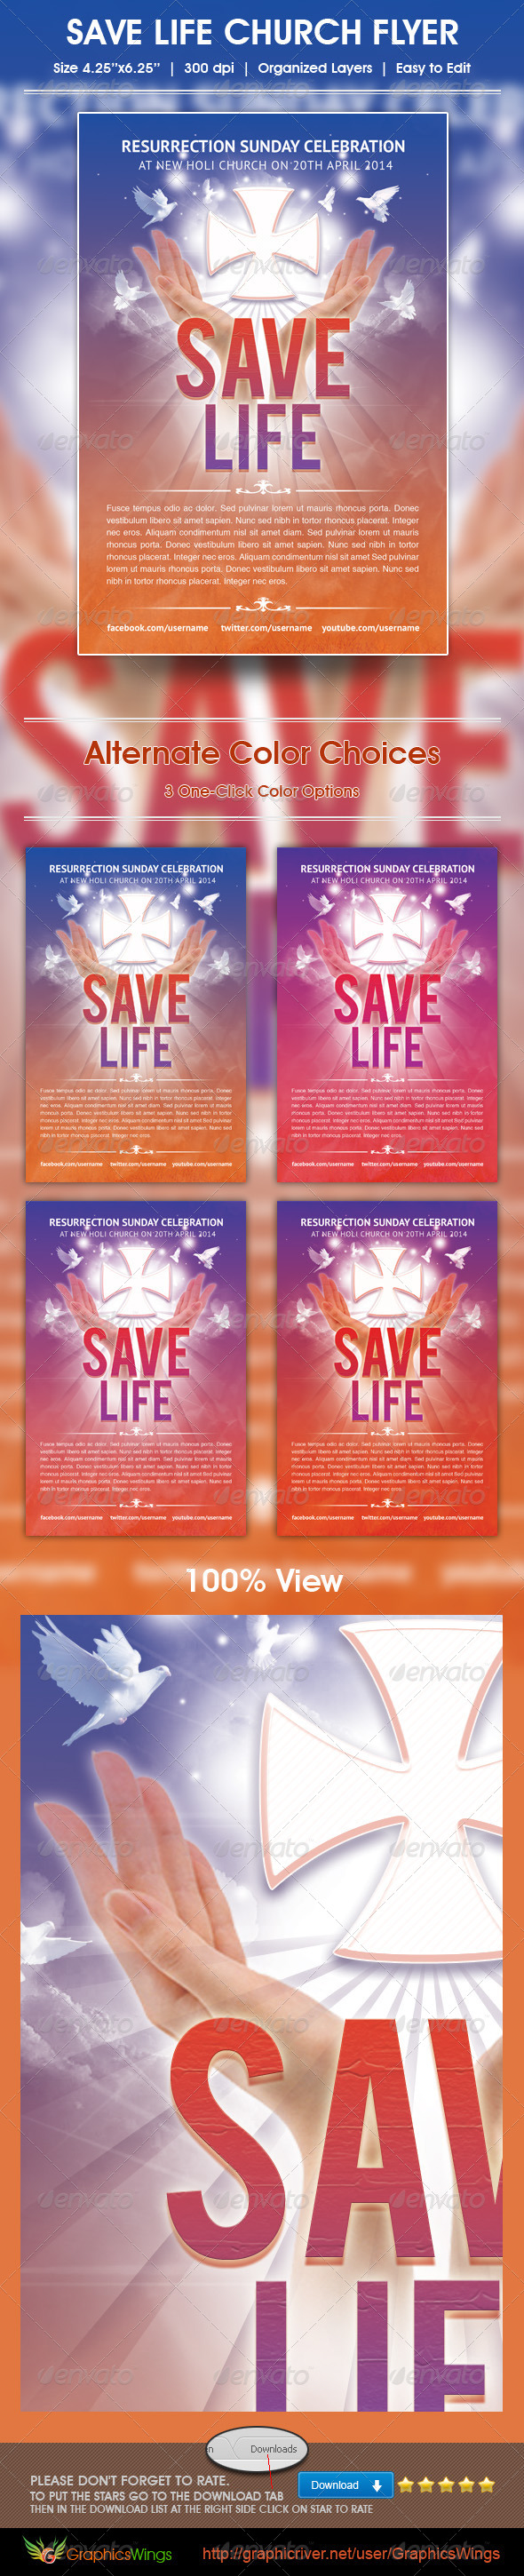 GraphicRiver Save Life Church Flyer Template 4942058